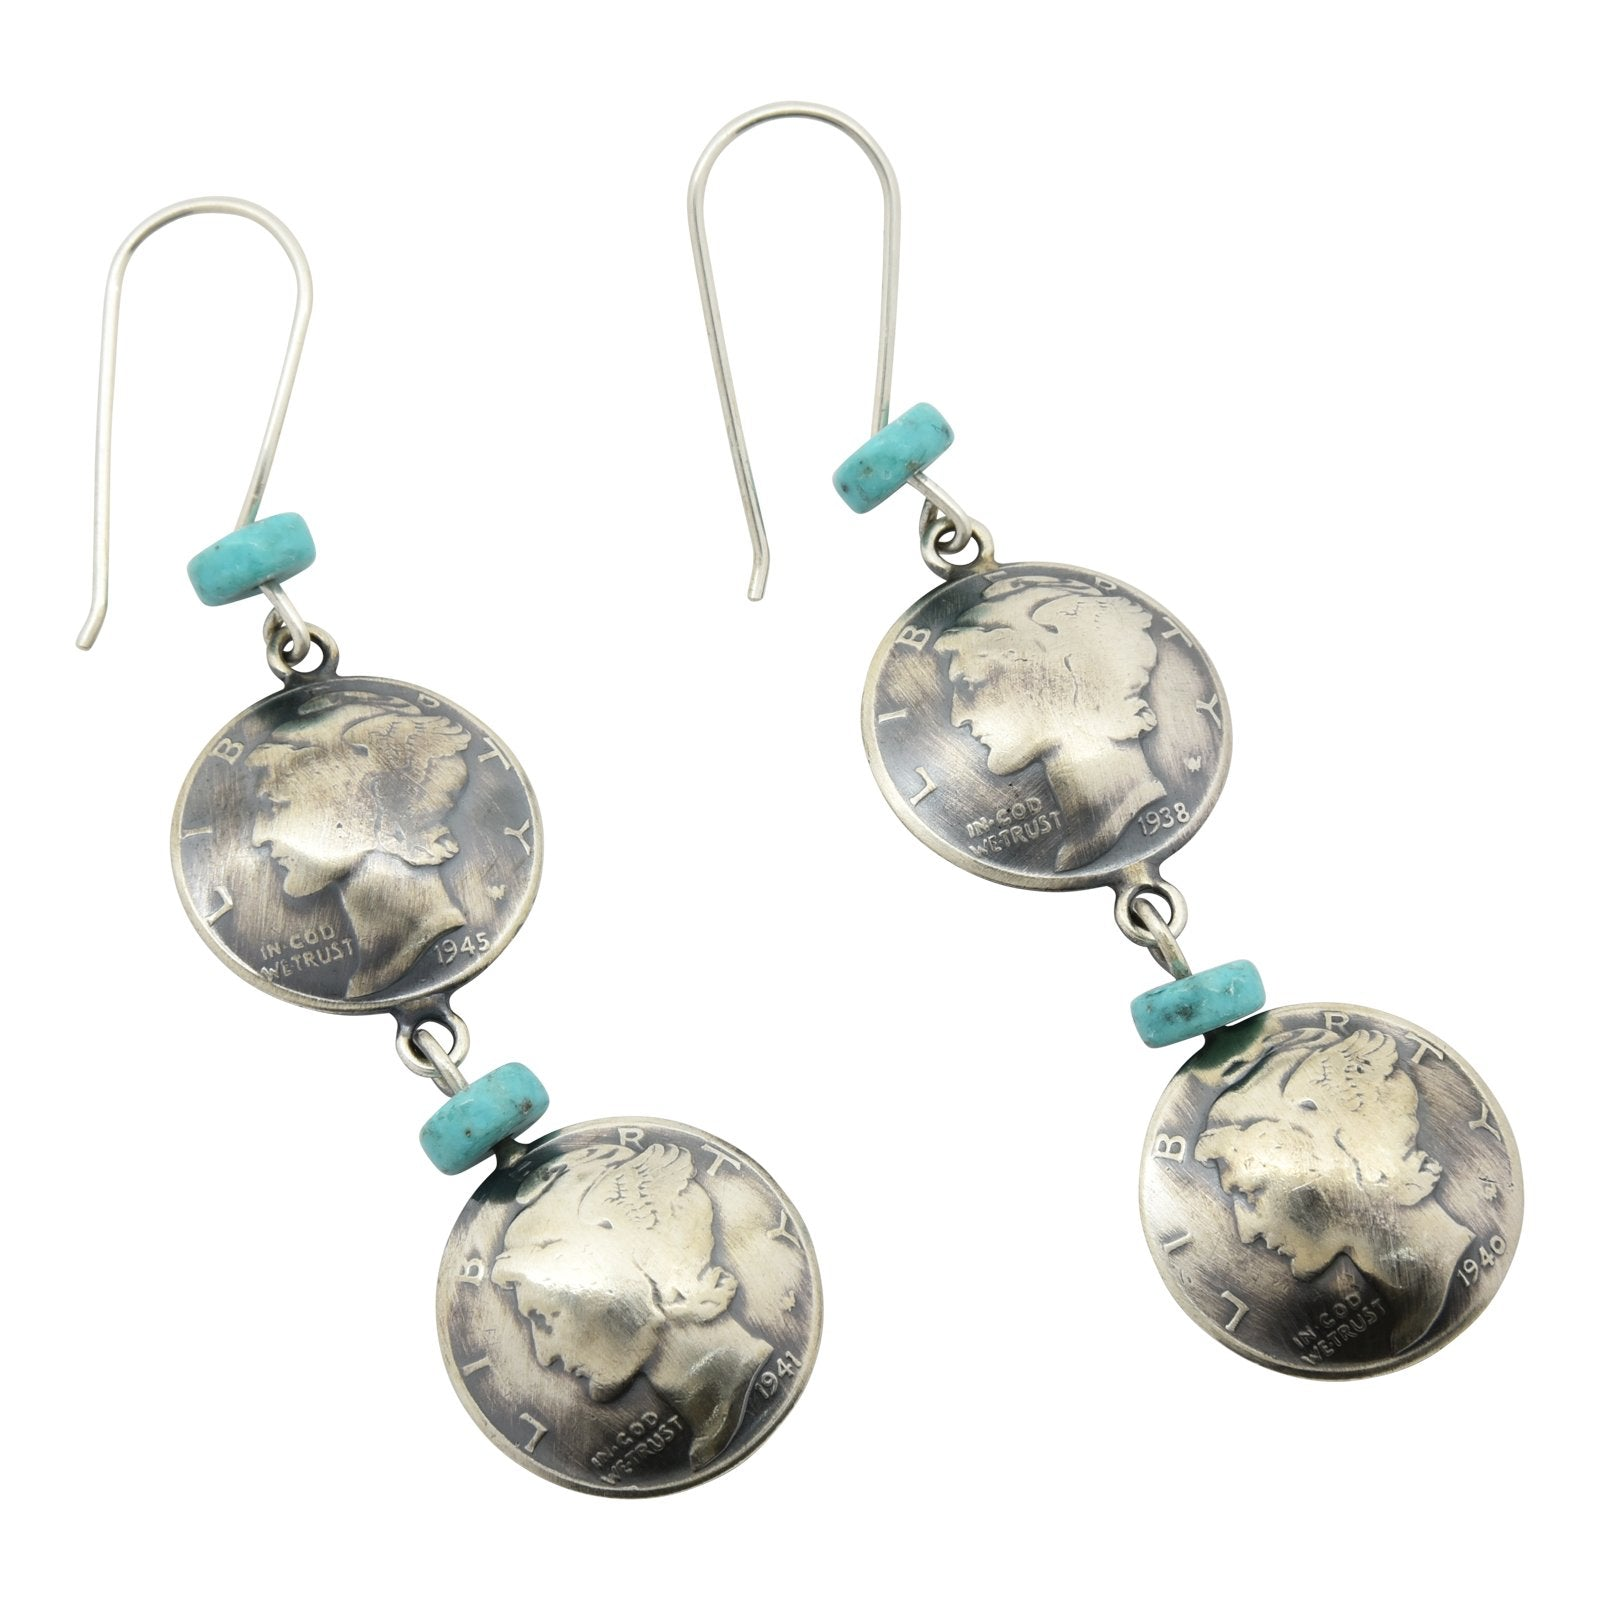 James McCabe Mercury Dime Double Coin Turquoise Earrings Silver Navajo - Turquoise925